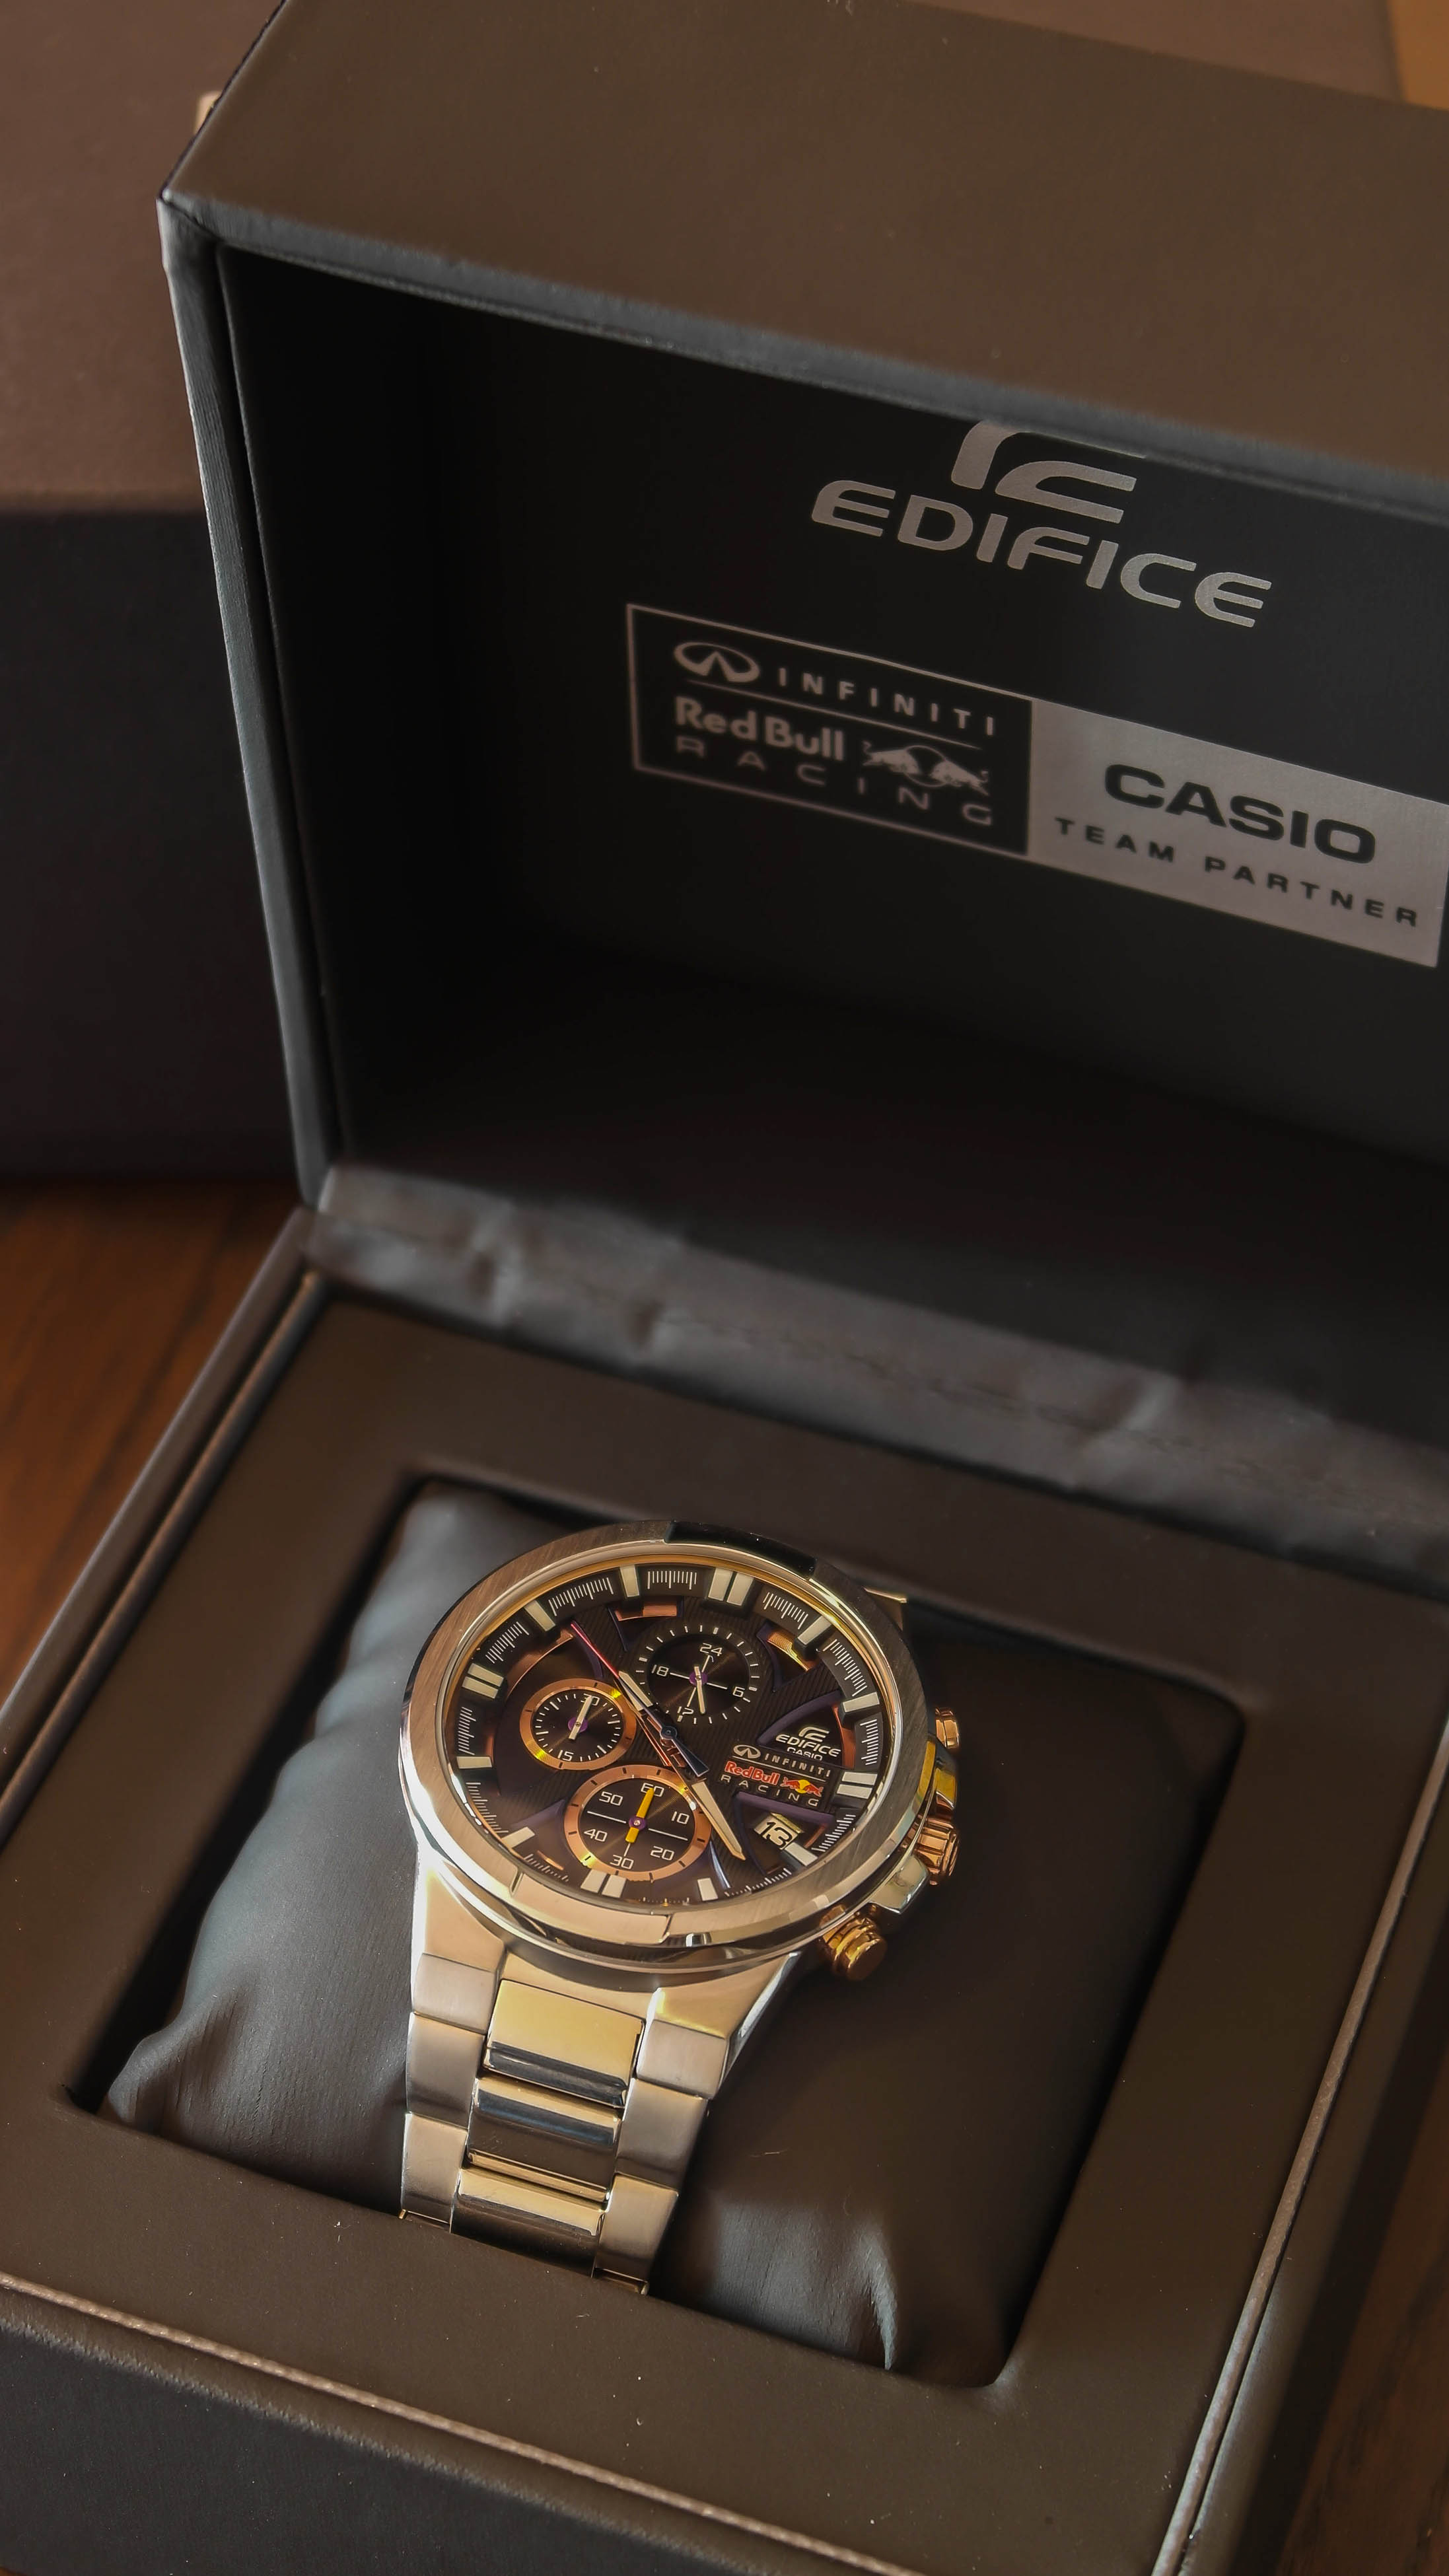 Gents Casio Edifice Infiniti Red Bull Racing Chronograph Watch Efr